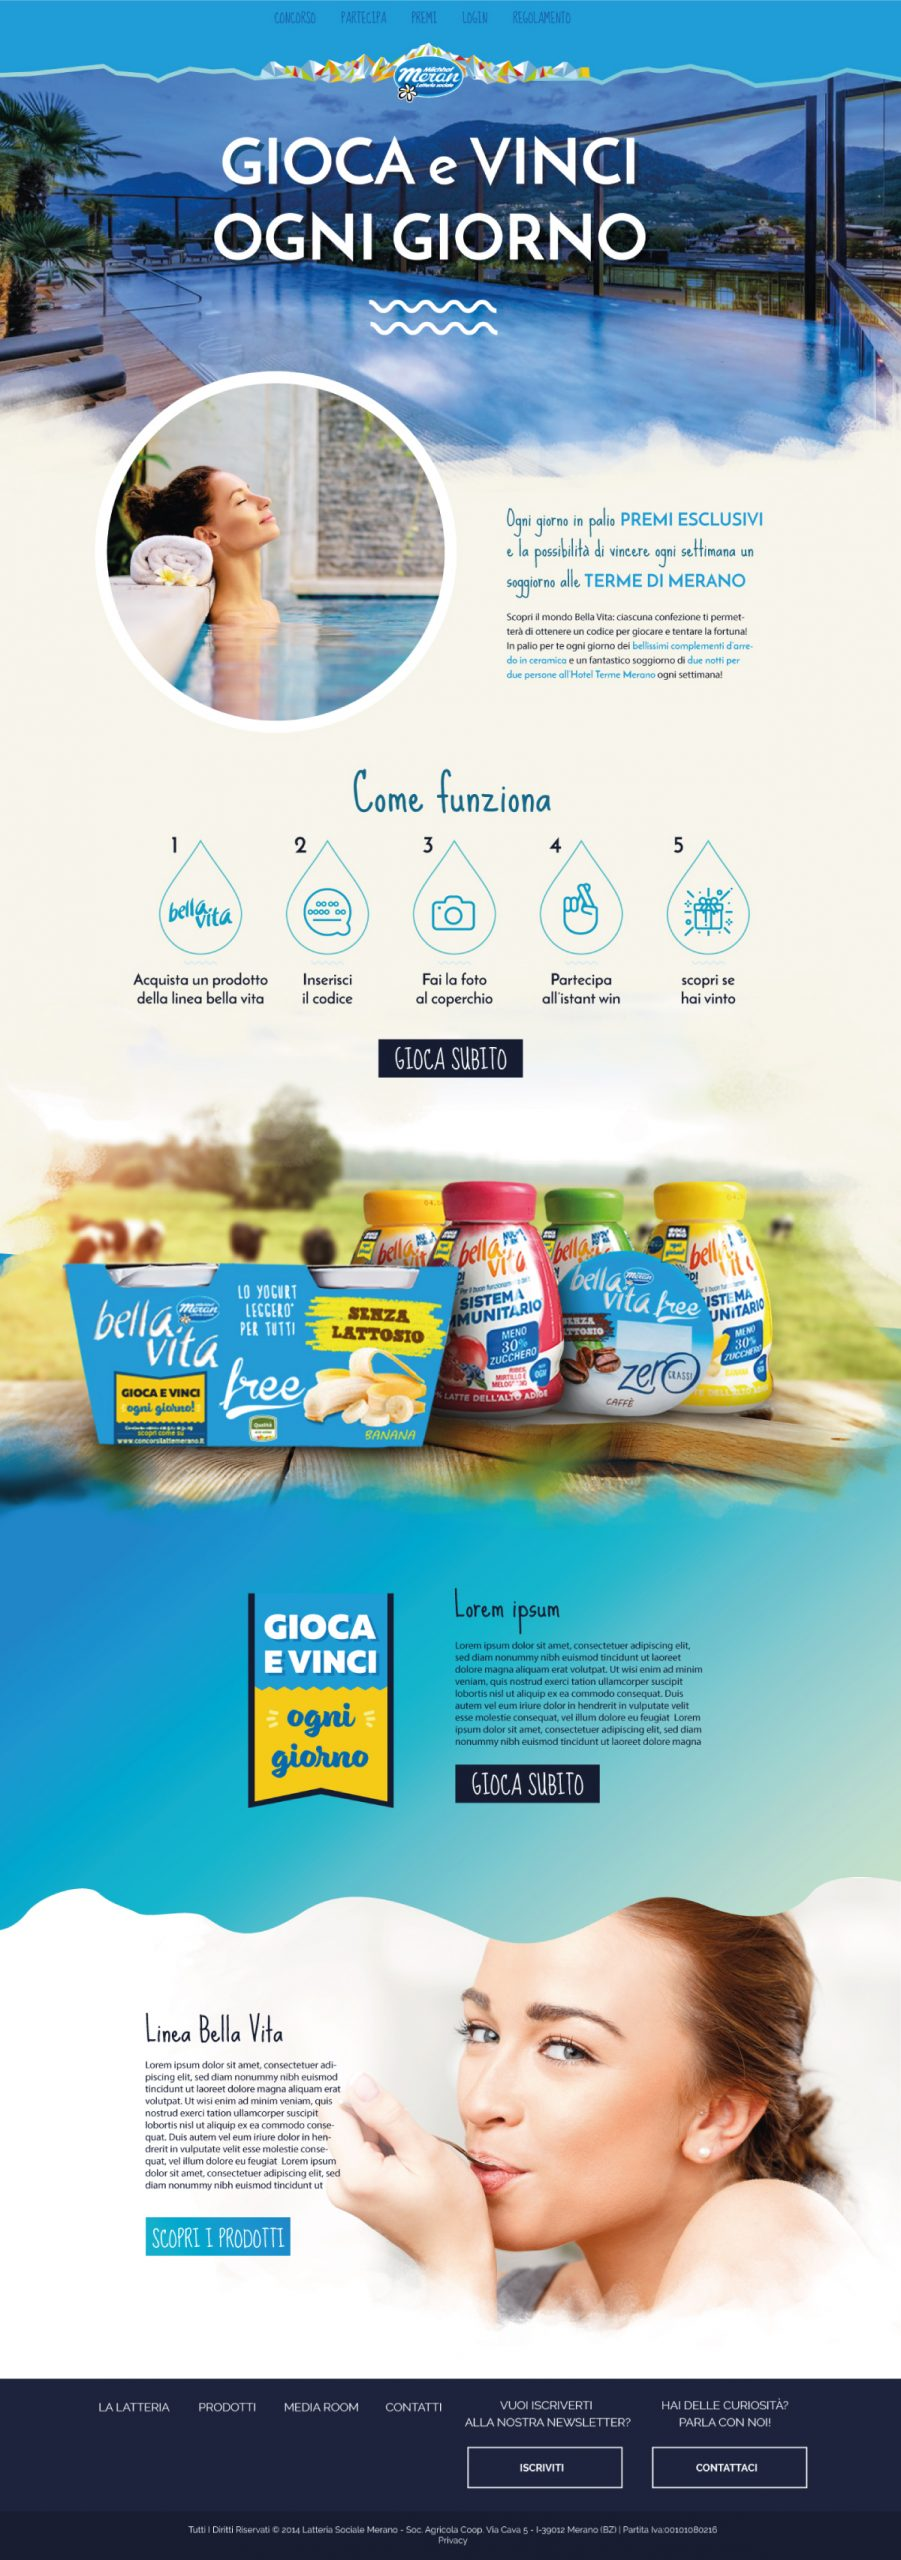 Concorso on pack